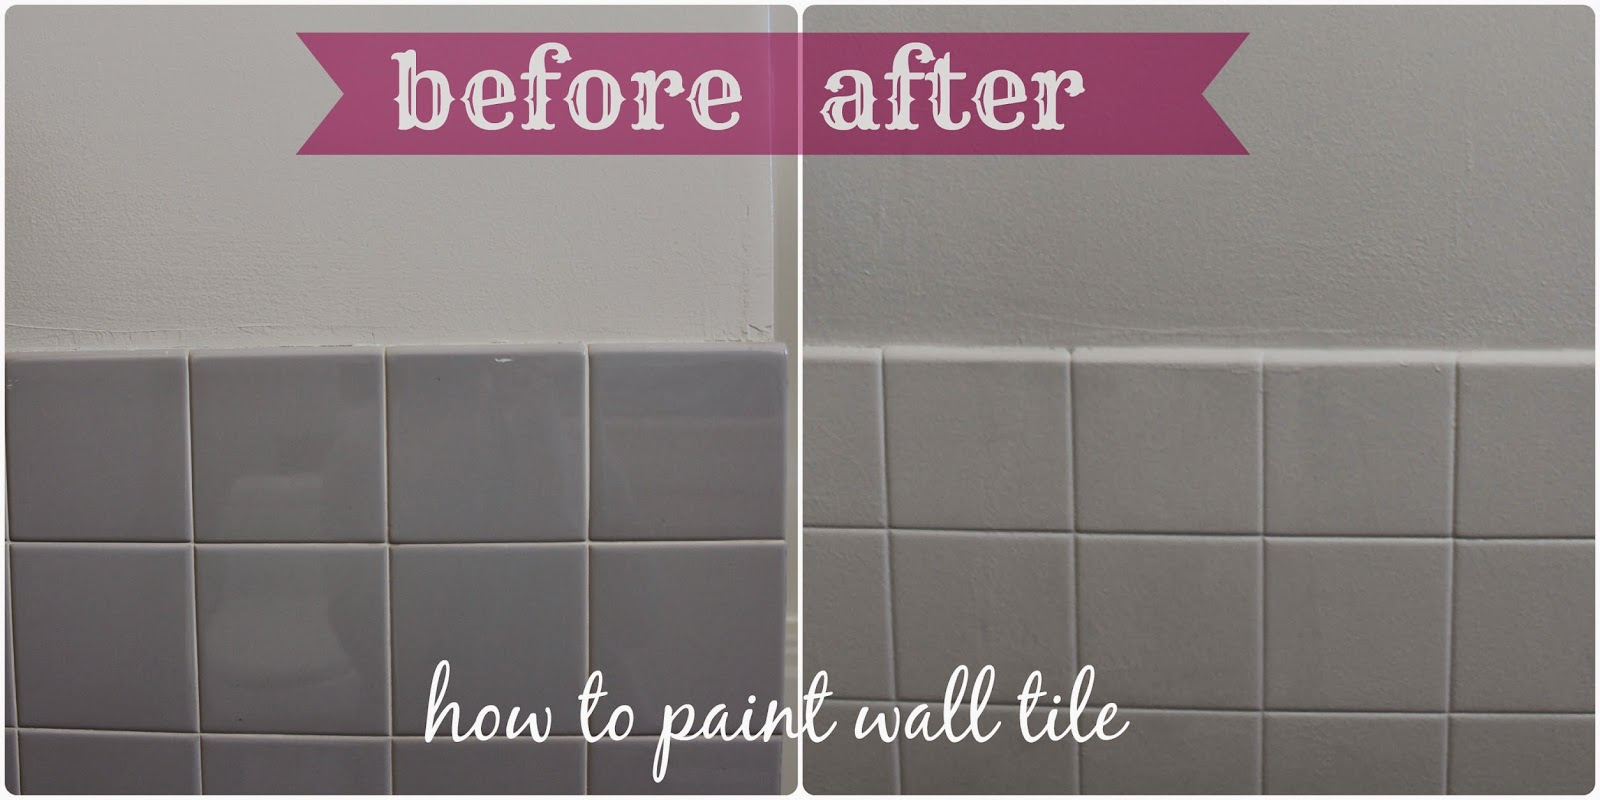 Can You Paint Over Tiles In Bathroom